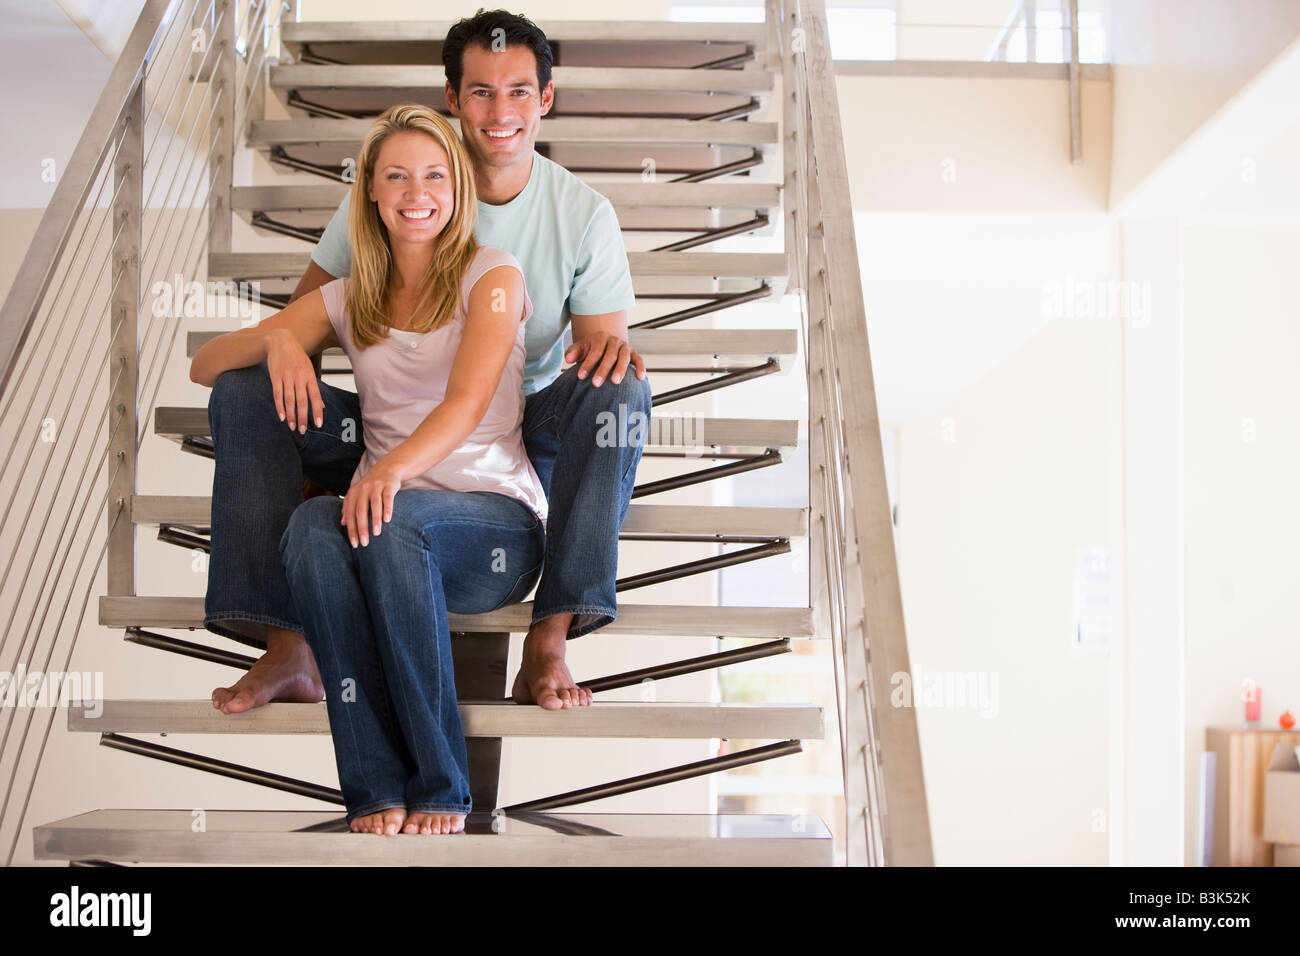 Couple sitting on staircase smiling - Stock Image